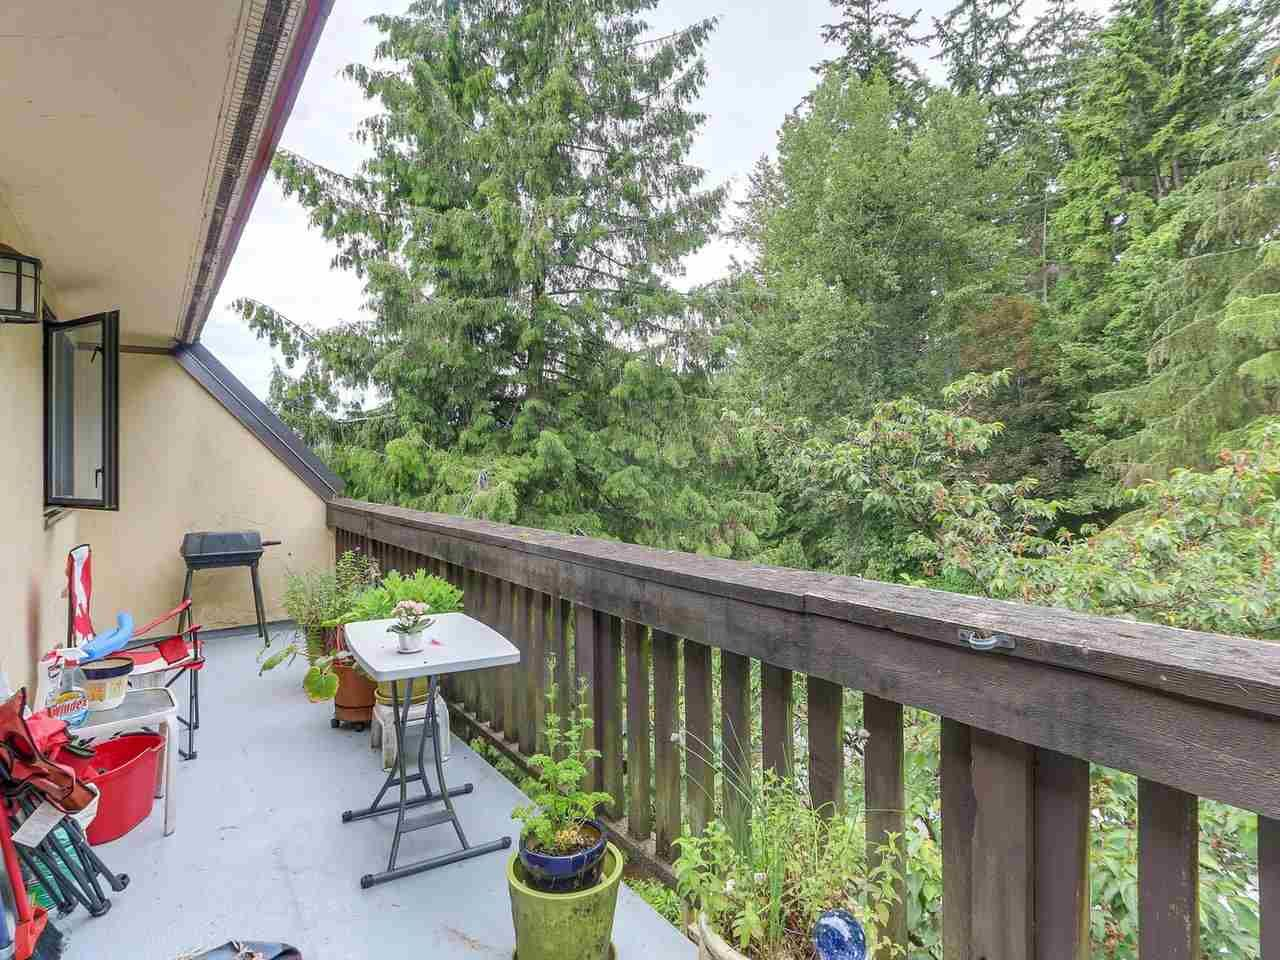 """Photo 6: Photos: 15 1811 PURCELL Way in North Vancouver: Lynnmour Condo for sale in """"LYNNMOUR SOUTH"""" : MLS®# R2276321"""